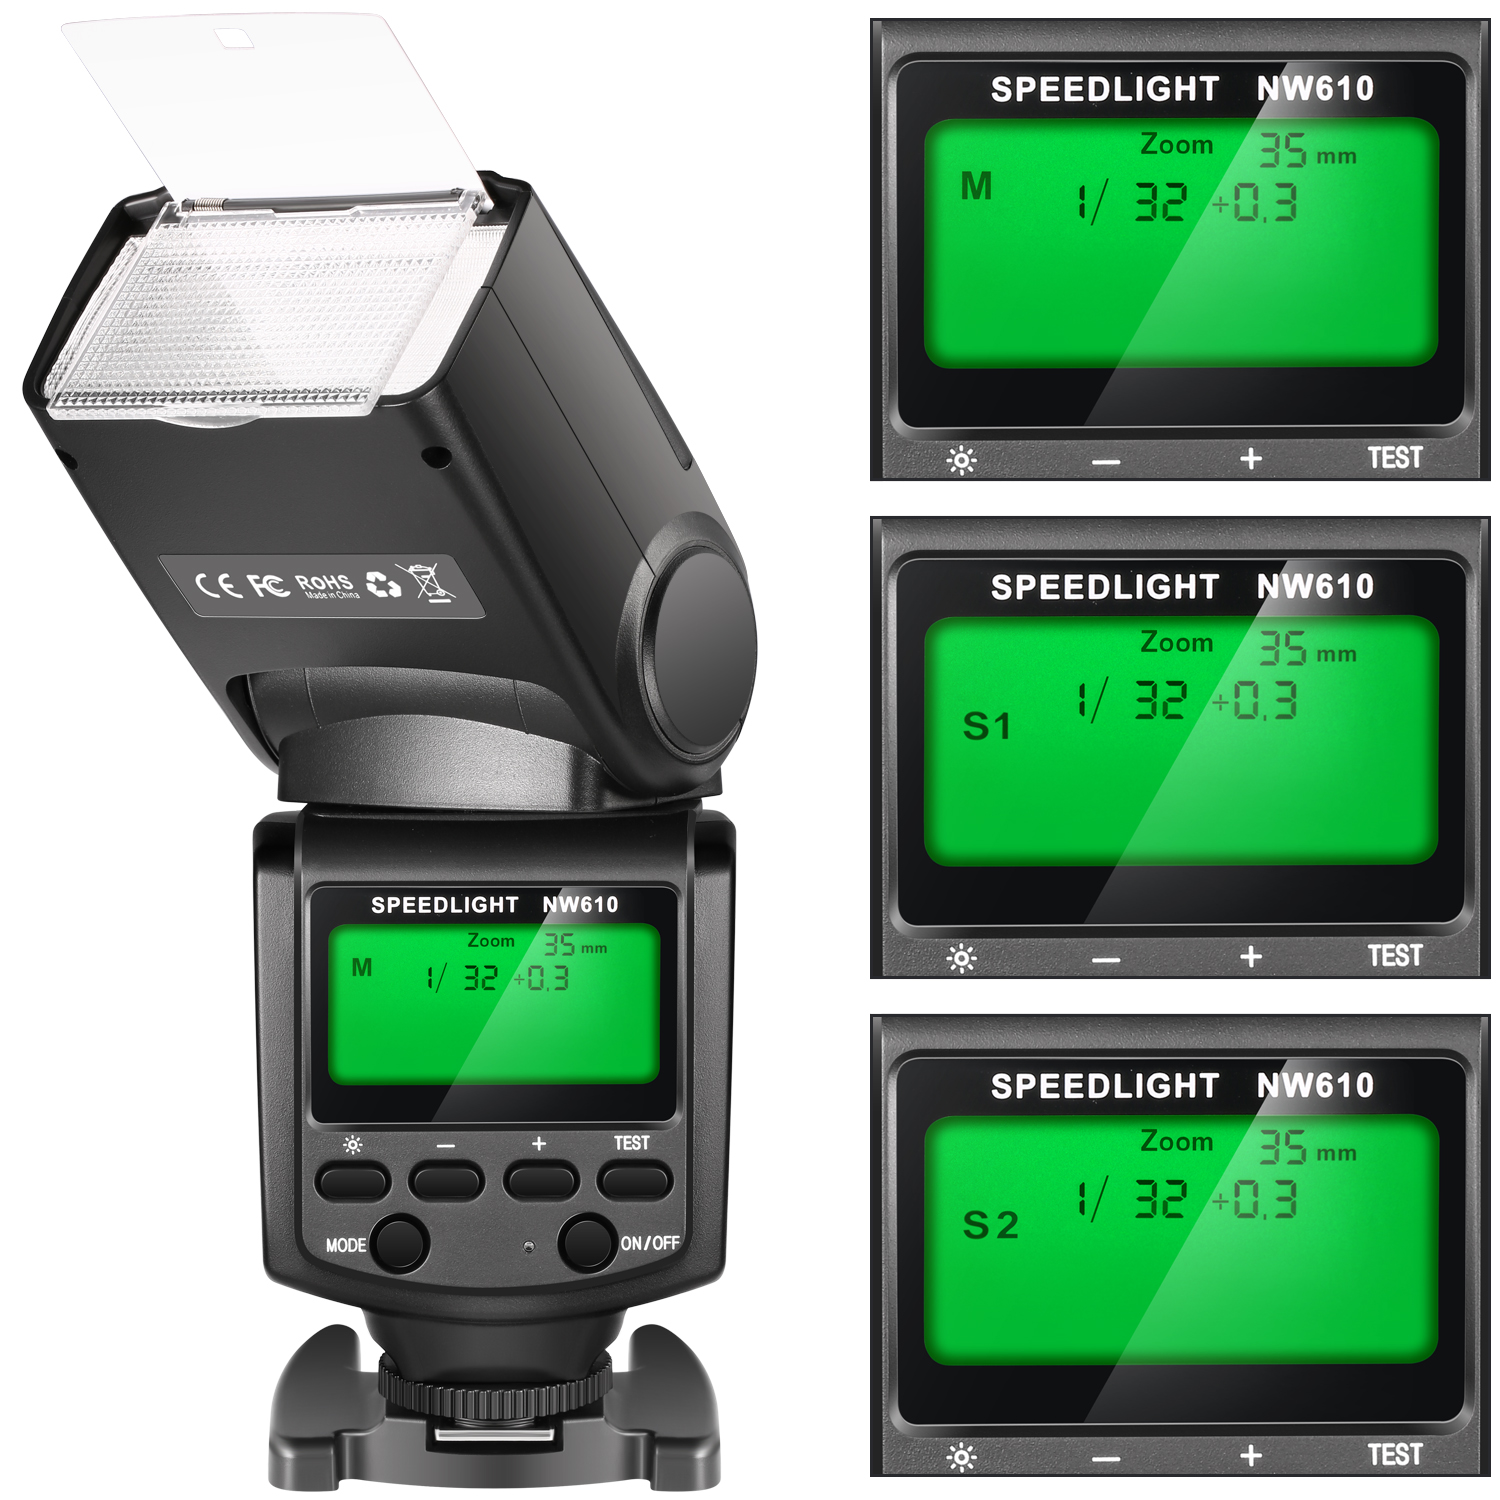 neewer speedlite nw 670 manual